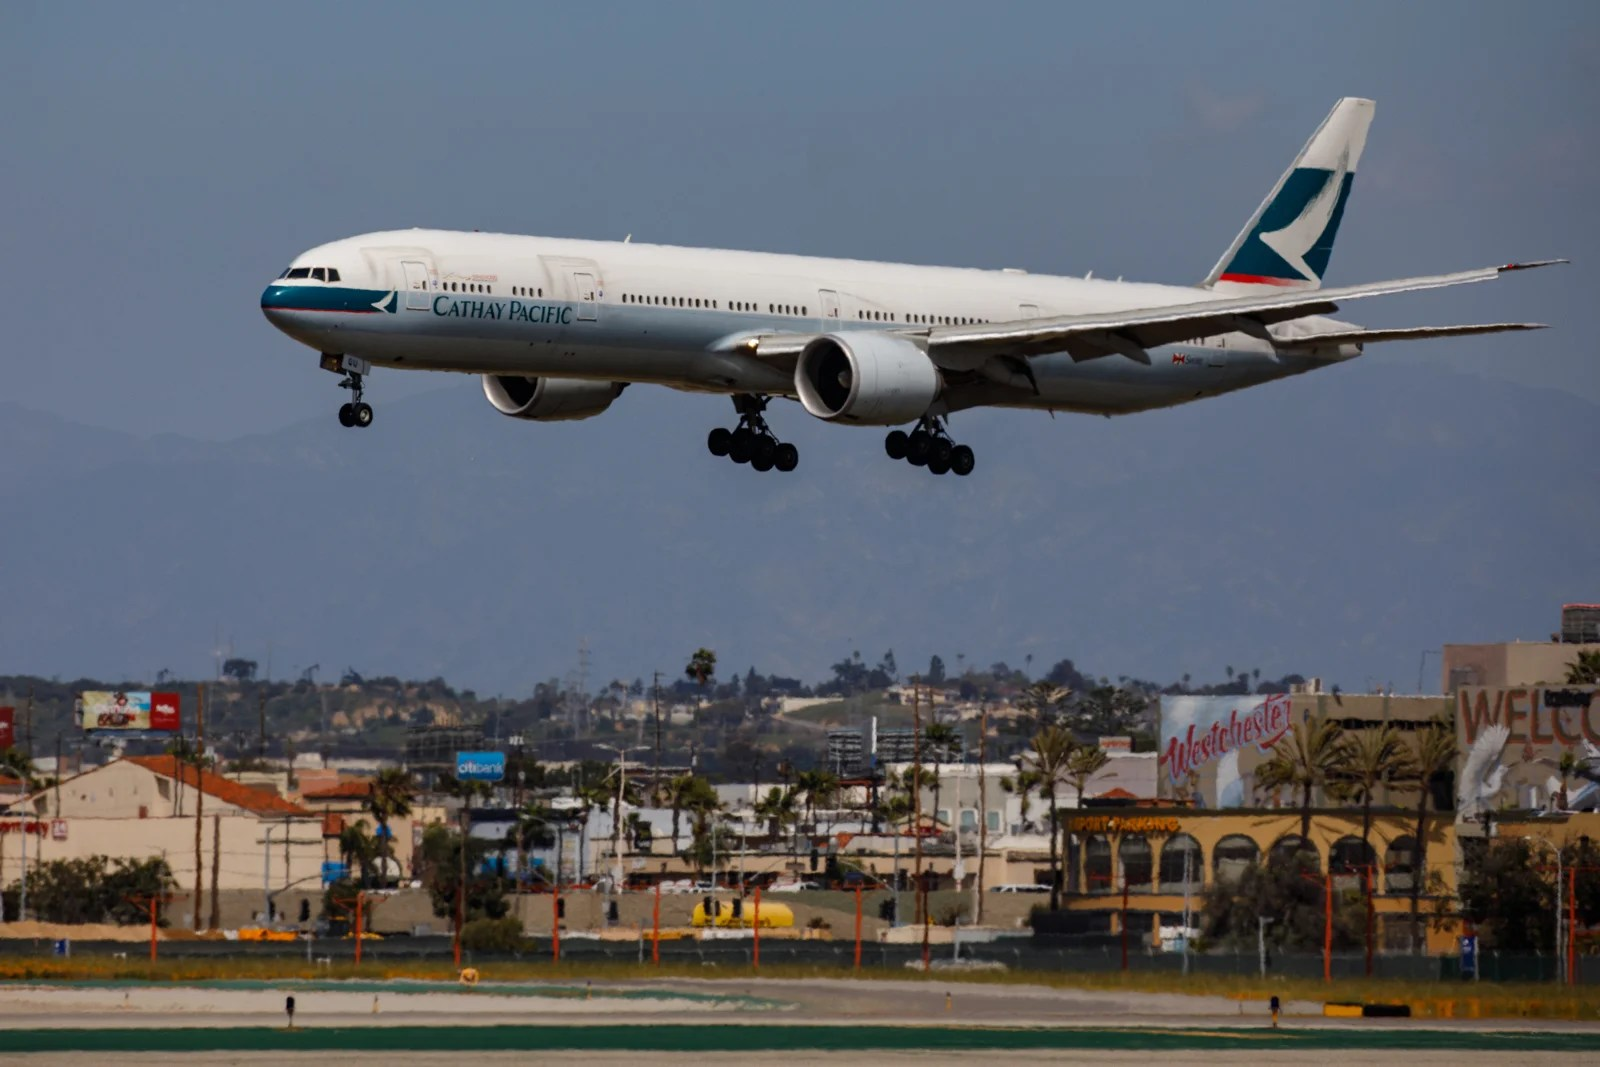 Cathay Pacific improves its Asia Miles expiration policy